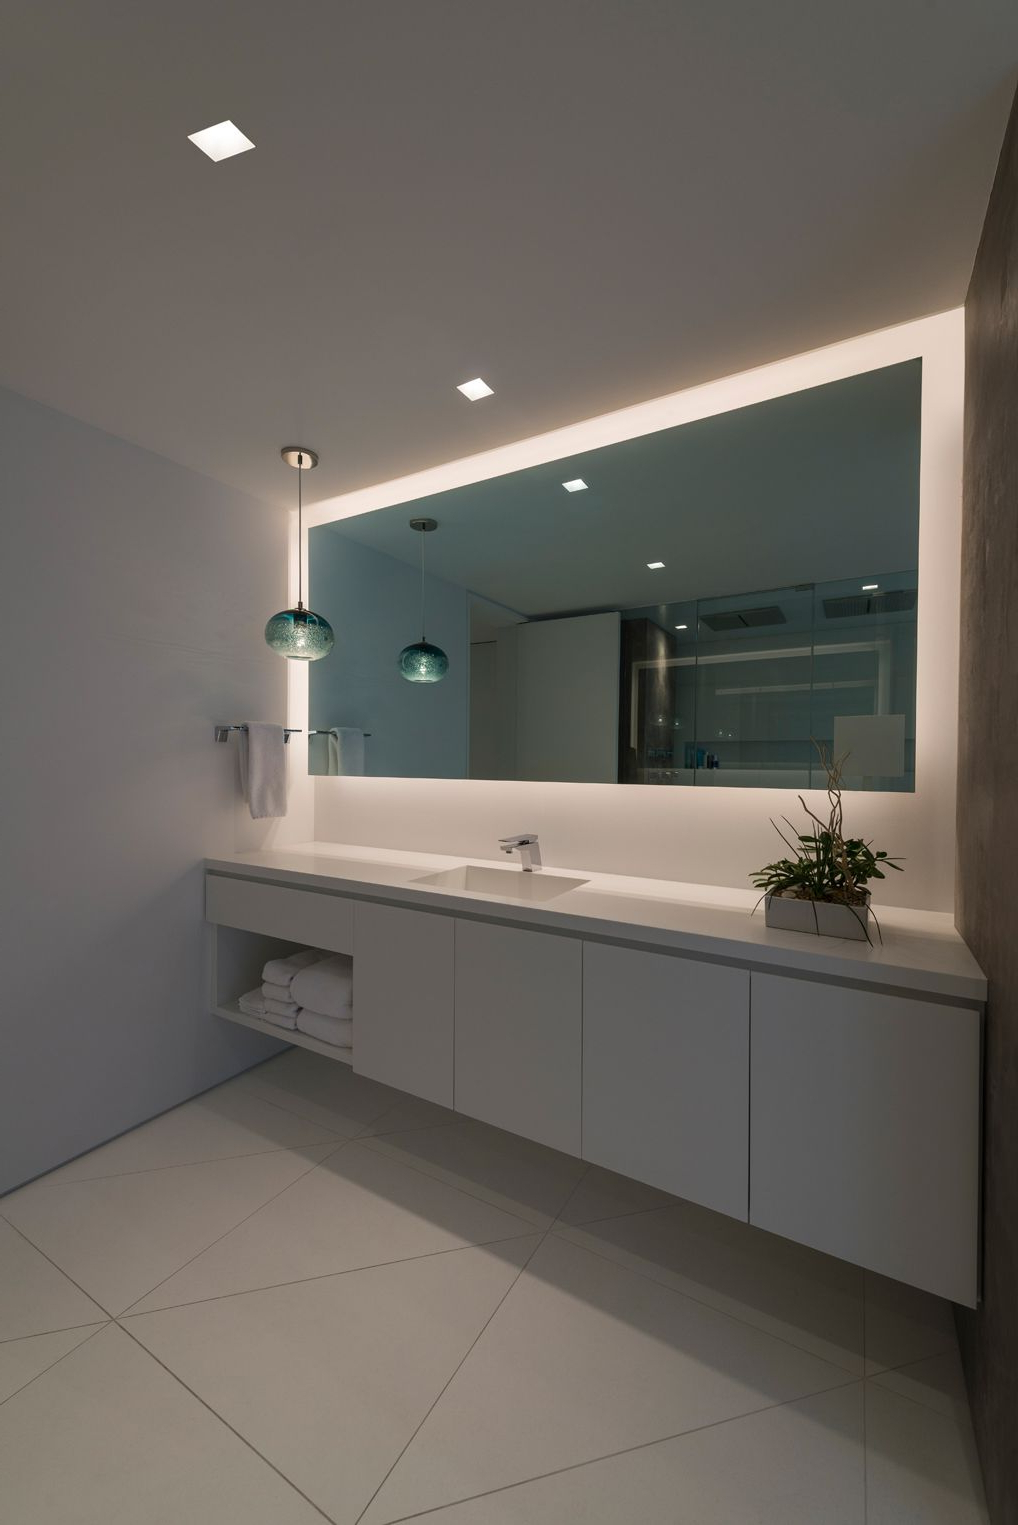 Lighted Bathroom Wall Mirrors With Fashionable Tips To Choose A Bathroom Mirror (Gallery 7 of 20)